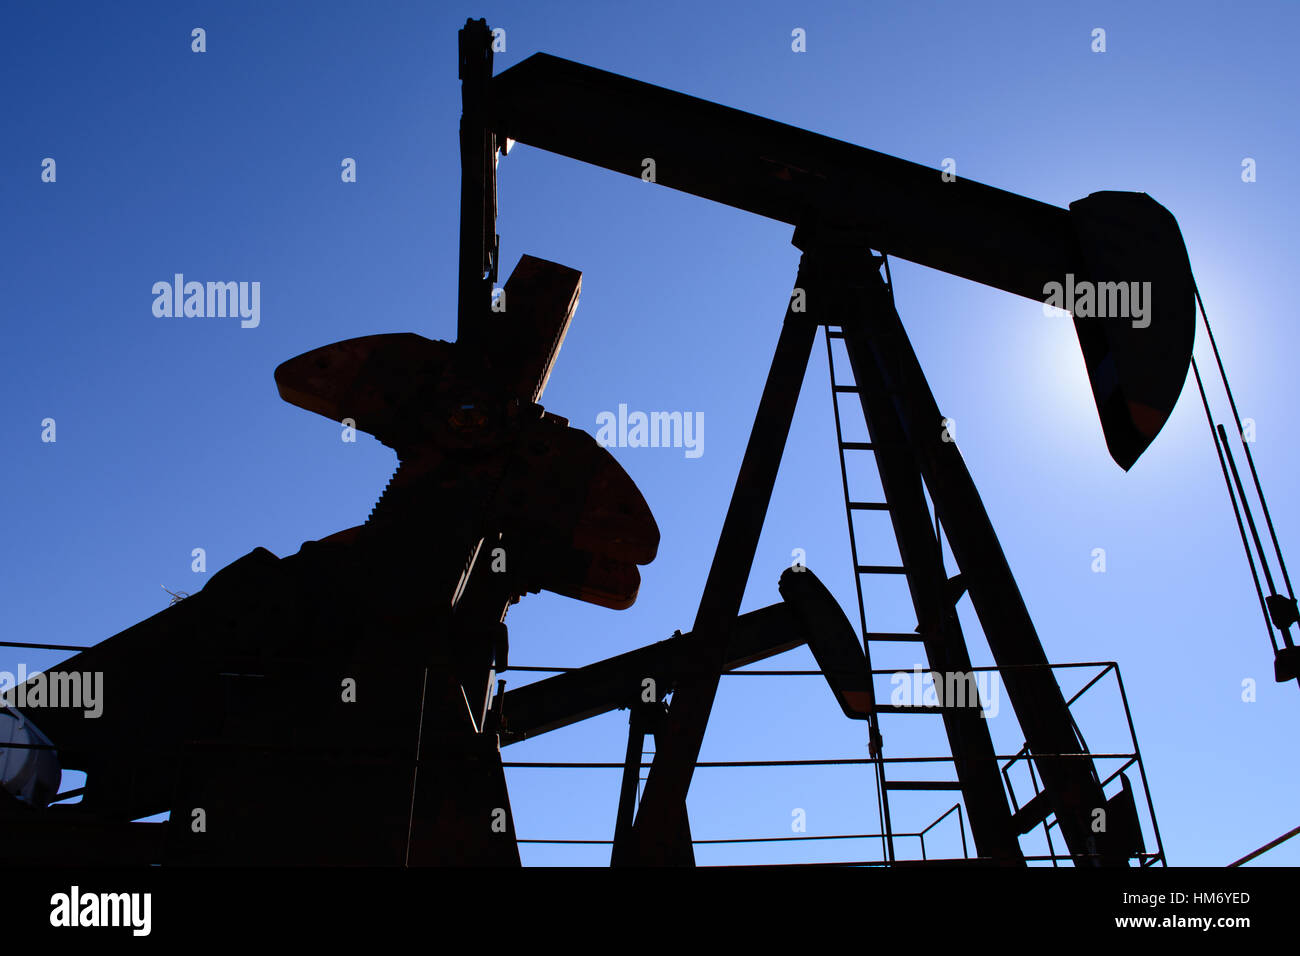 Oilfield pumpjack, rusty and old, silhouetted by the sun. Clear blue sky background. Illustrates oilfield life, - Stock Image